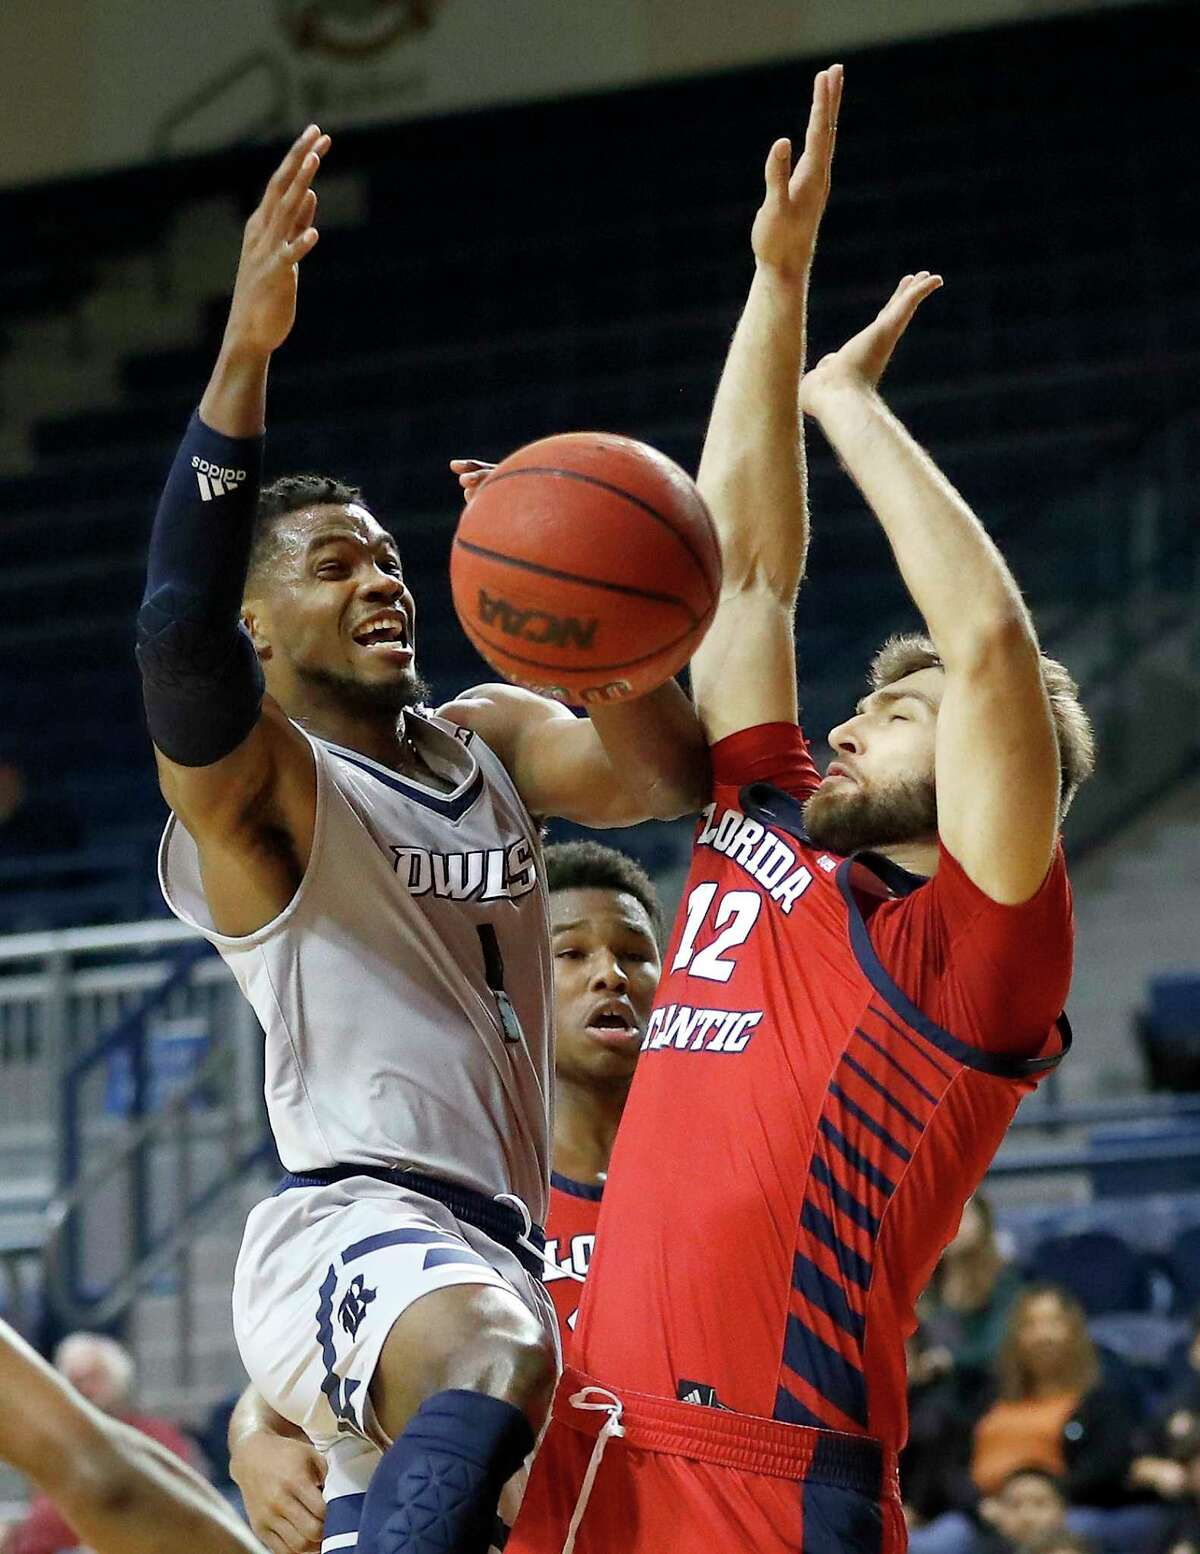 Rice Owls guard Josh Parrish (1) goes up for a basket against Florida Atlantic Owls forward Aleksandar Zecevic (12) during the first half of an NCAA men's college basketball game at Tudor Fieldhouse Thursday, Jan. 9, 2020, in Houston.